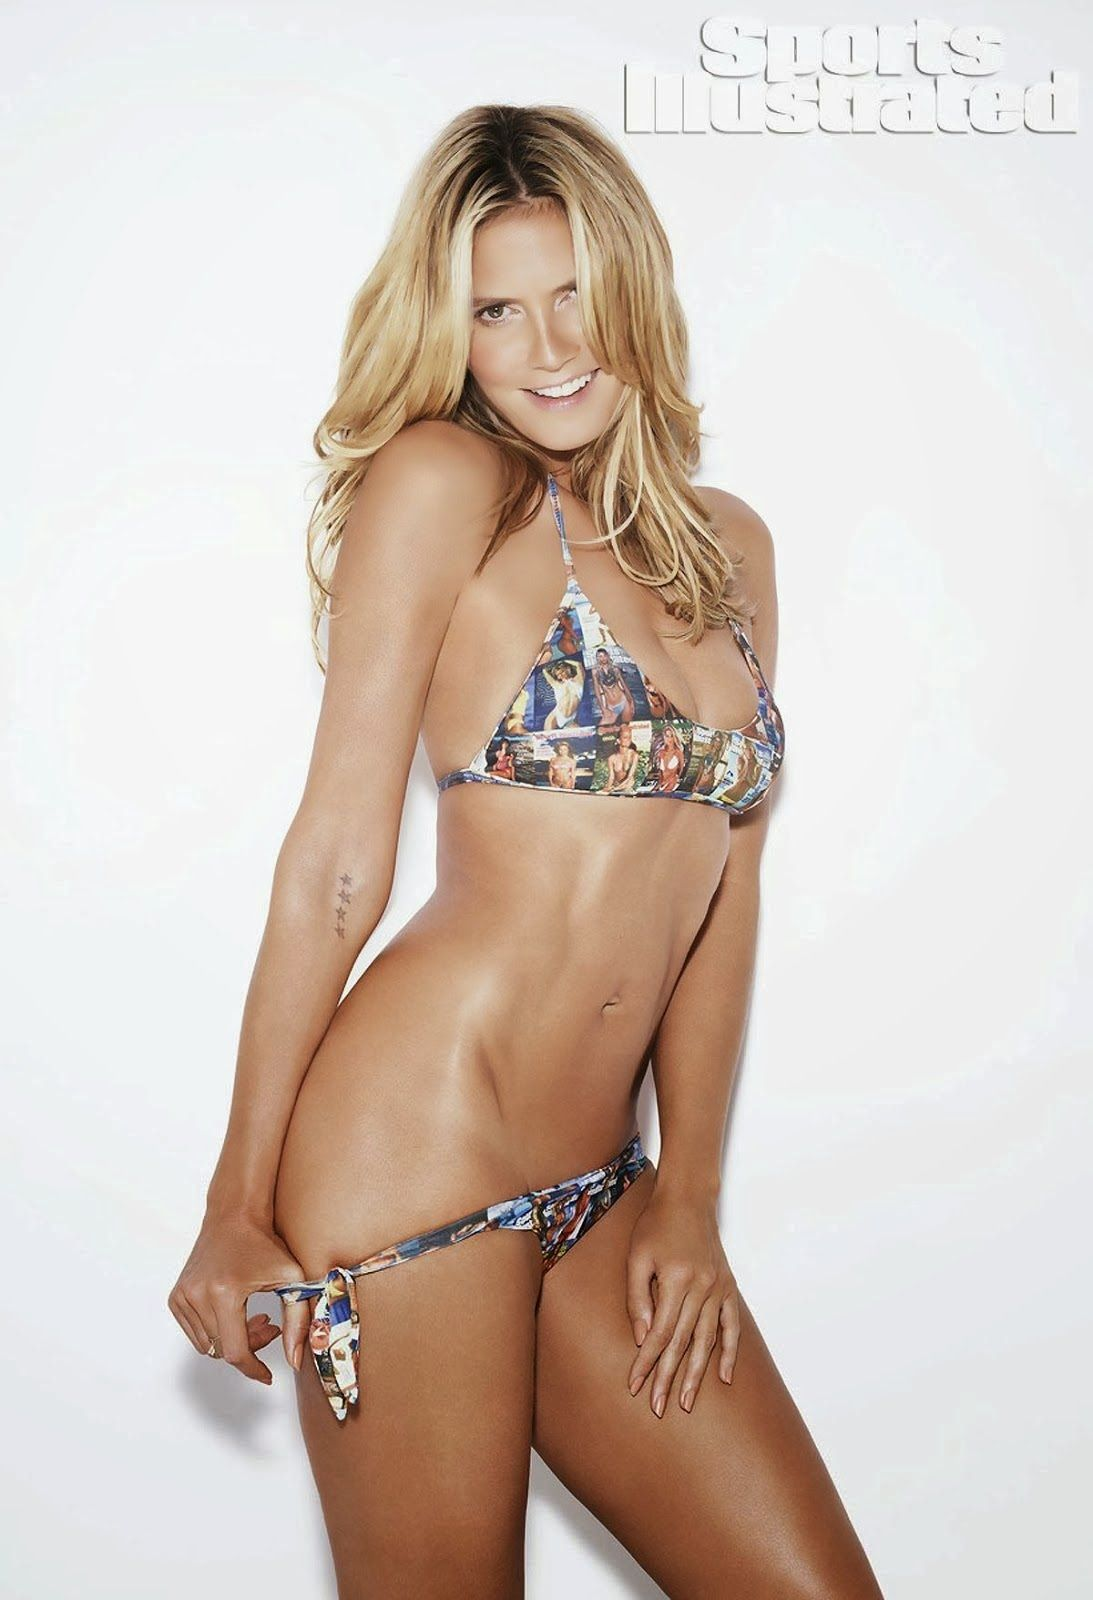 186b0d89bc269  in fast approaching, Heidi Klum has a bikini body that would make many  woman in the world will turn green with envy. Sports Illustrated swimsuit  2014 ...